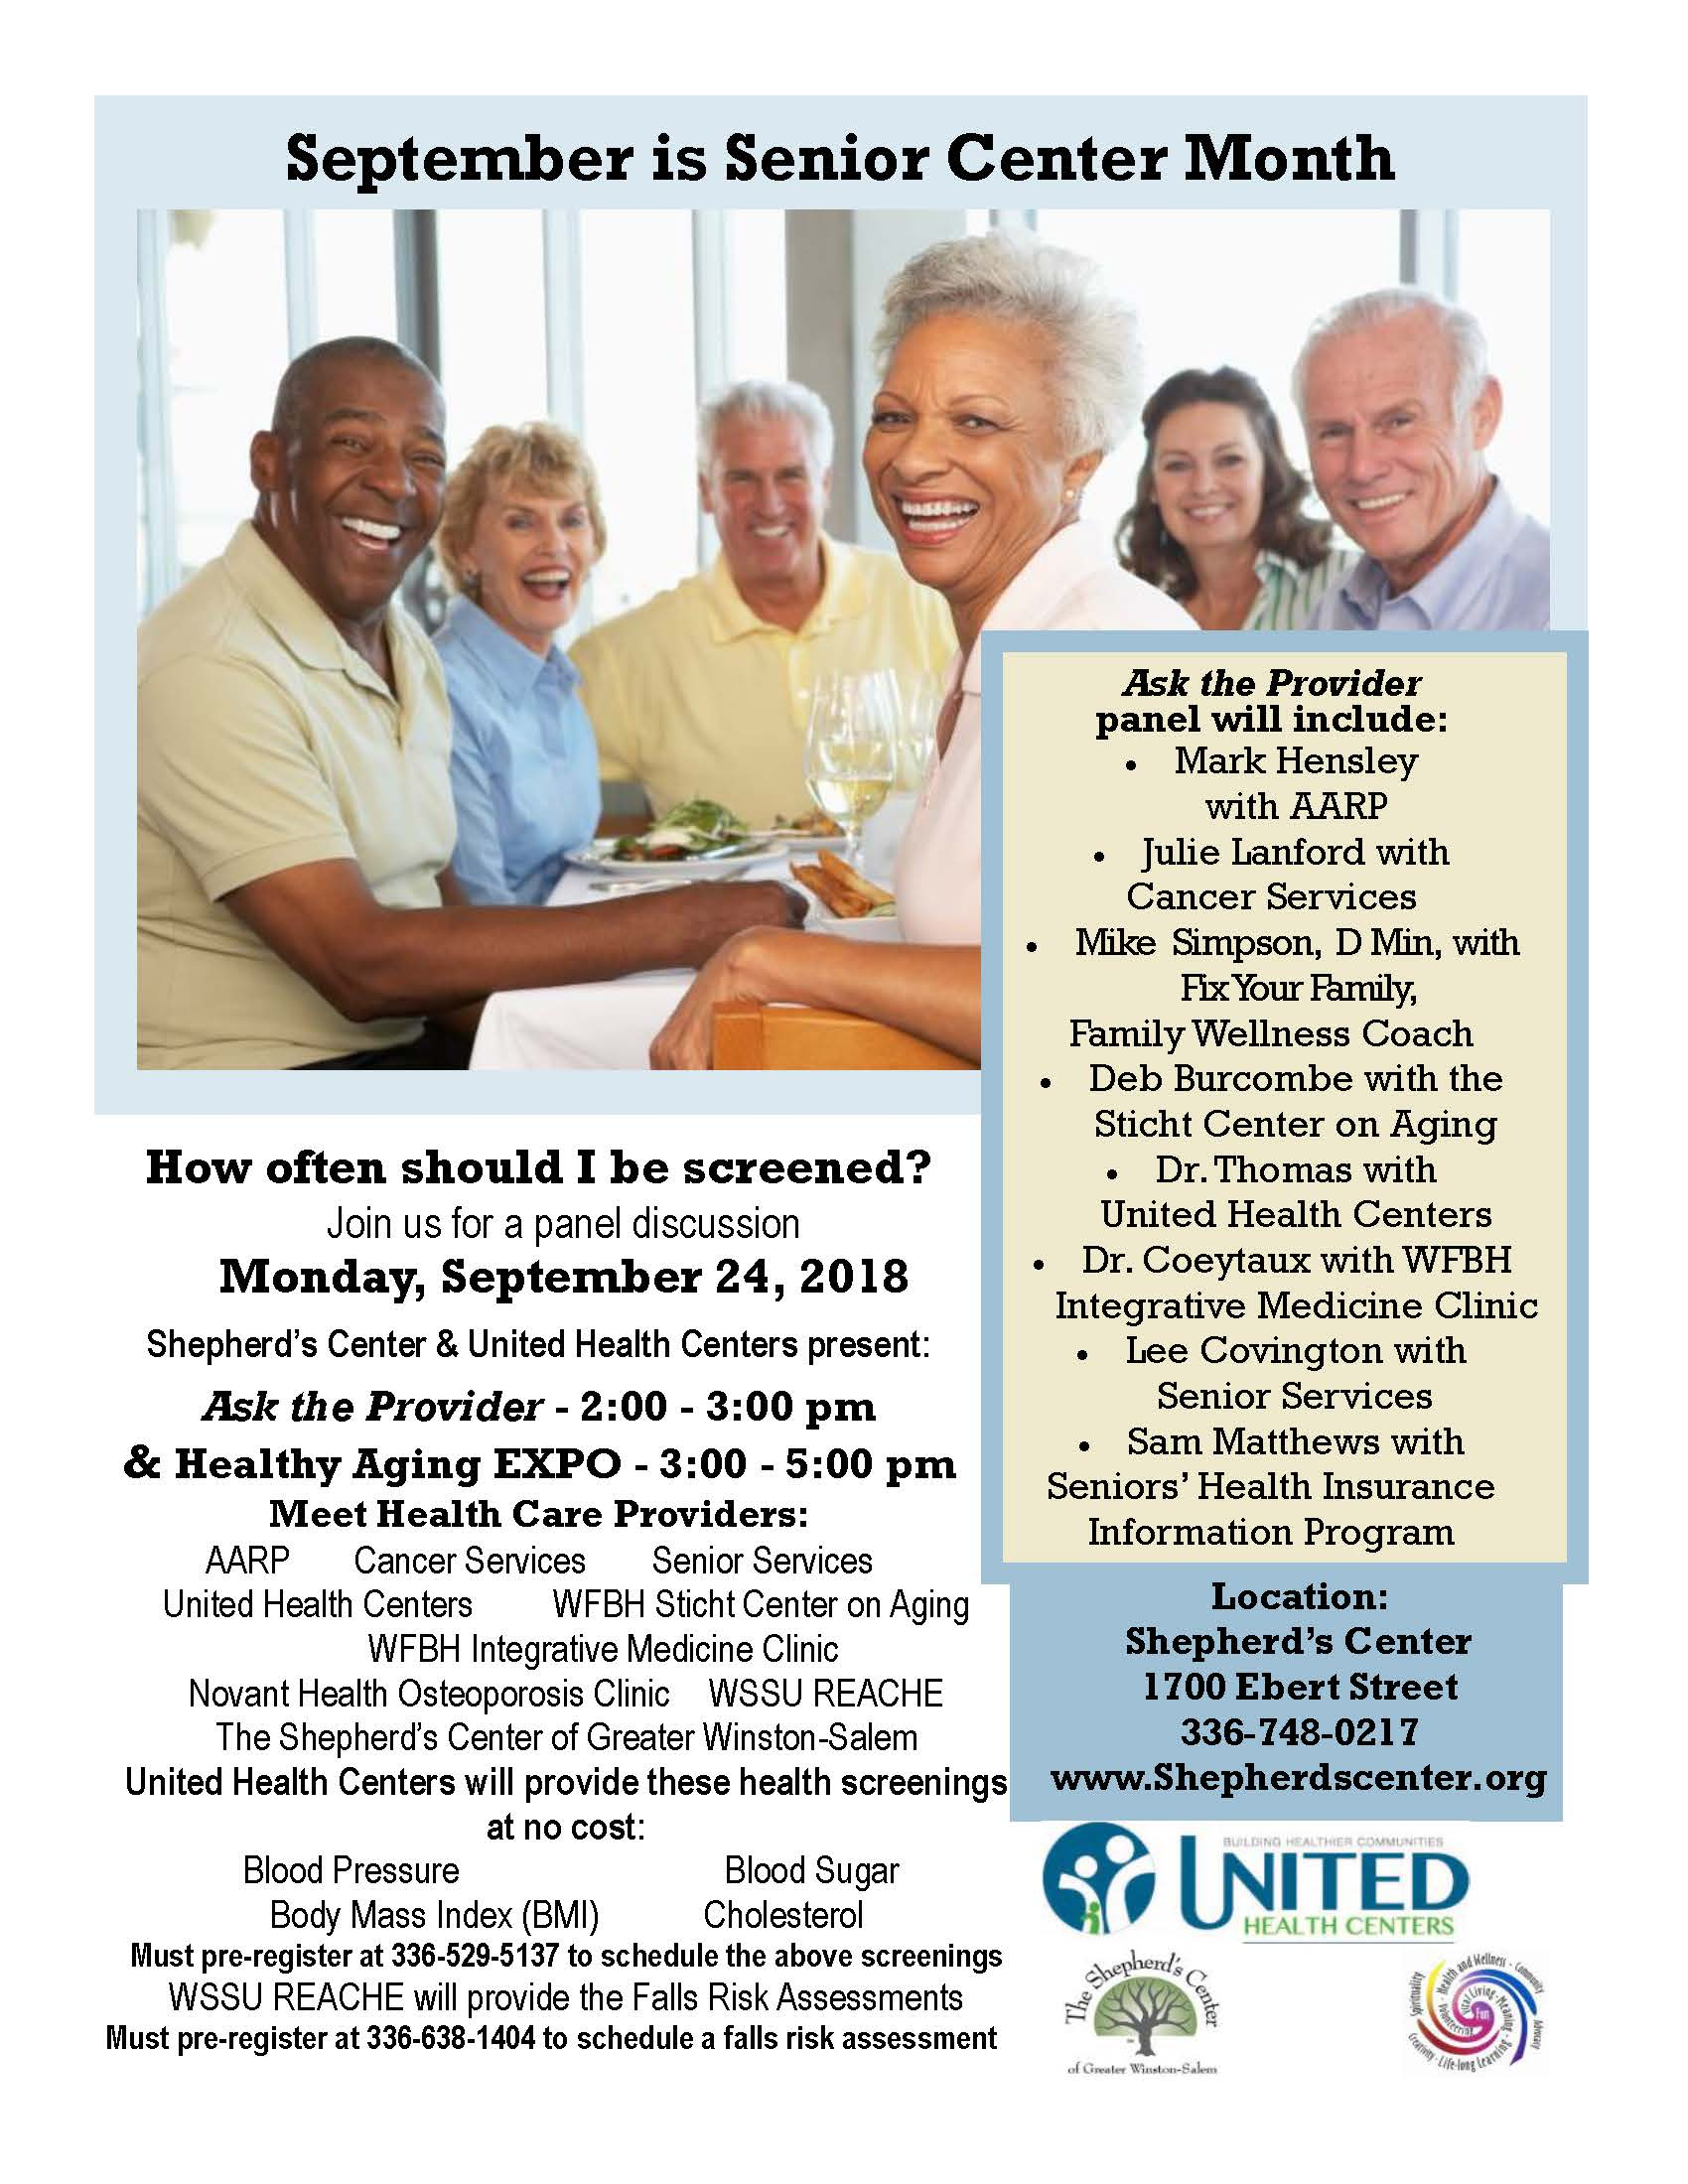 Sept 24 Healthy Aging Ask the Provider - Prava Email.jpg